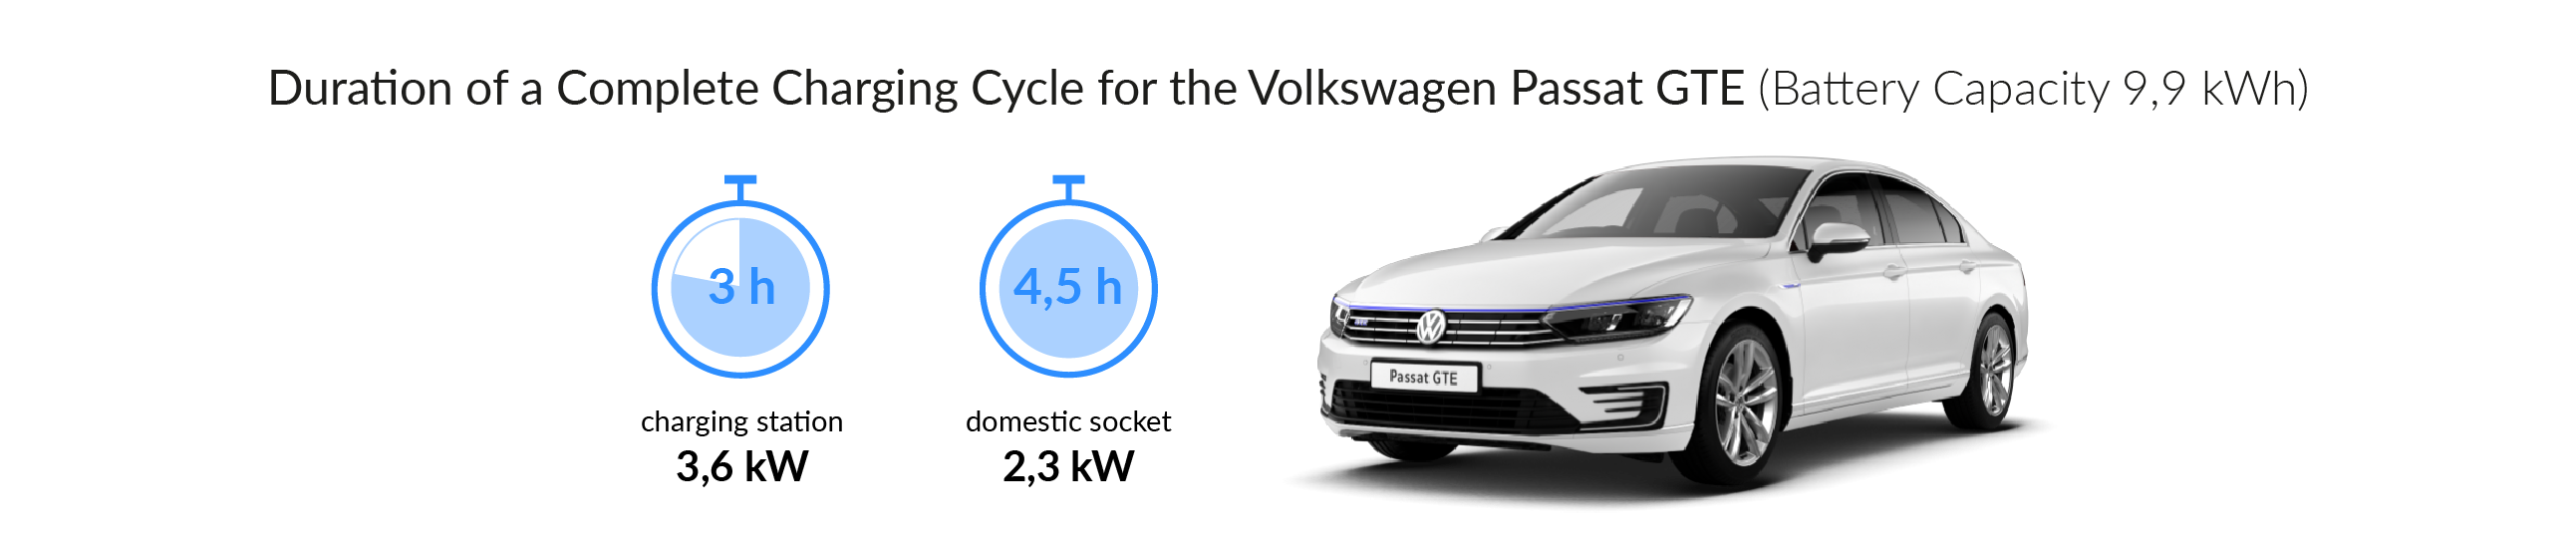 Charging time for your Volkswagen Passat GTE